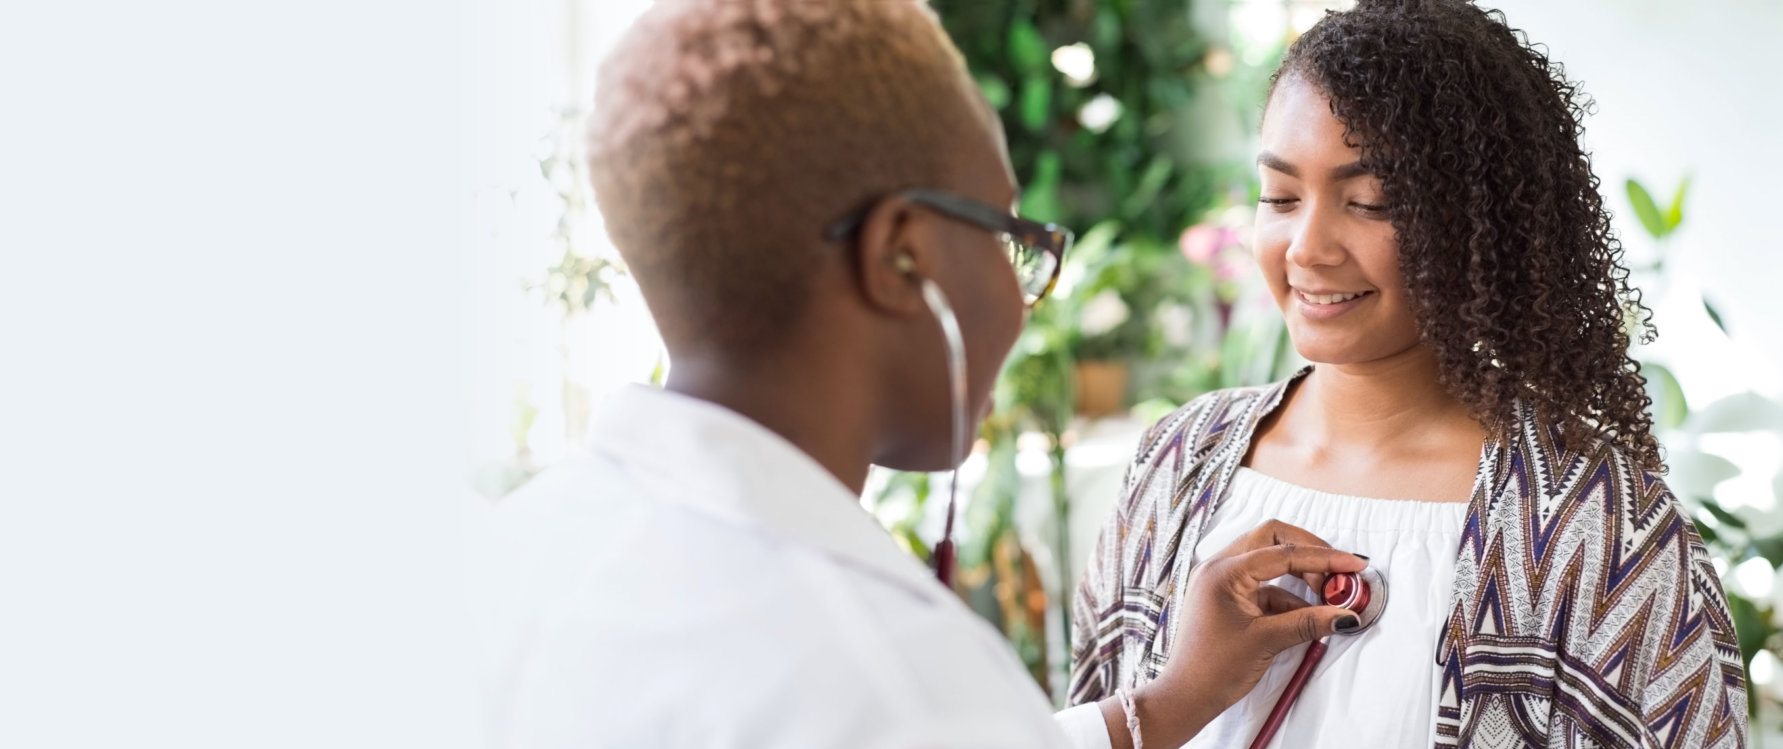 African American girl doctor using a stethoscope to conduct auscultation for a patient